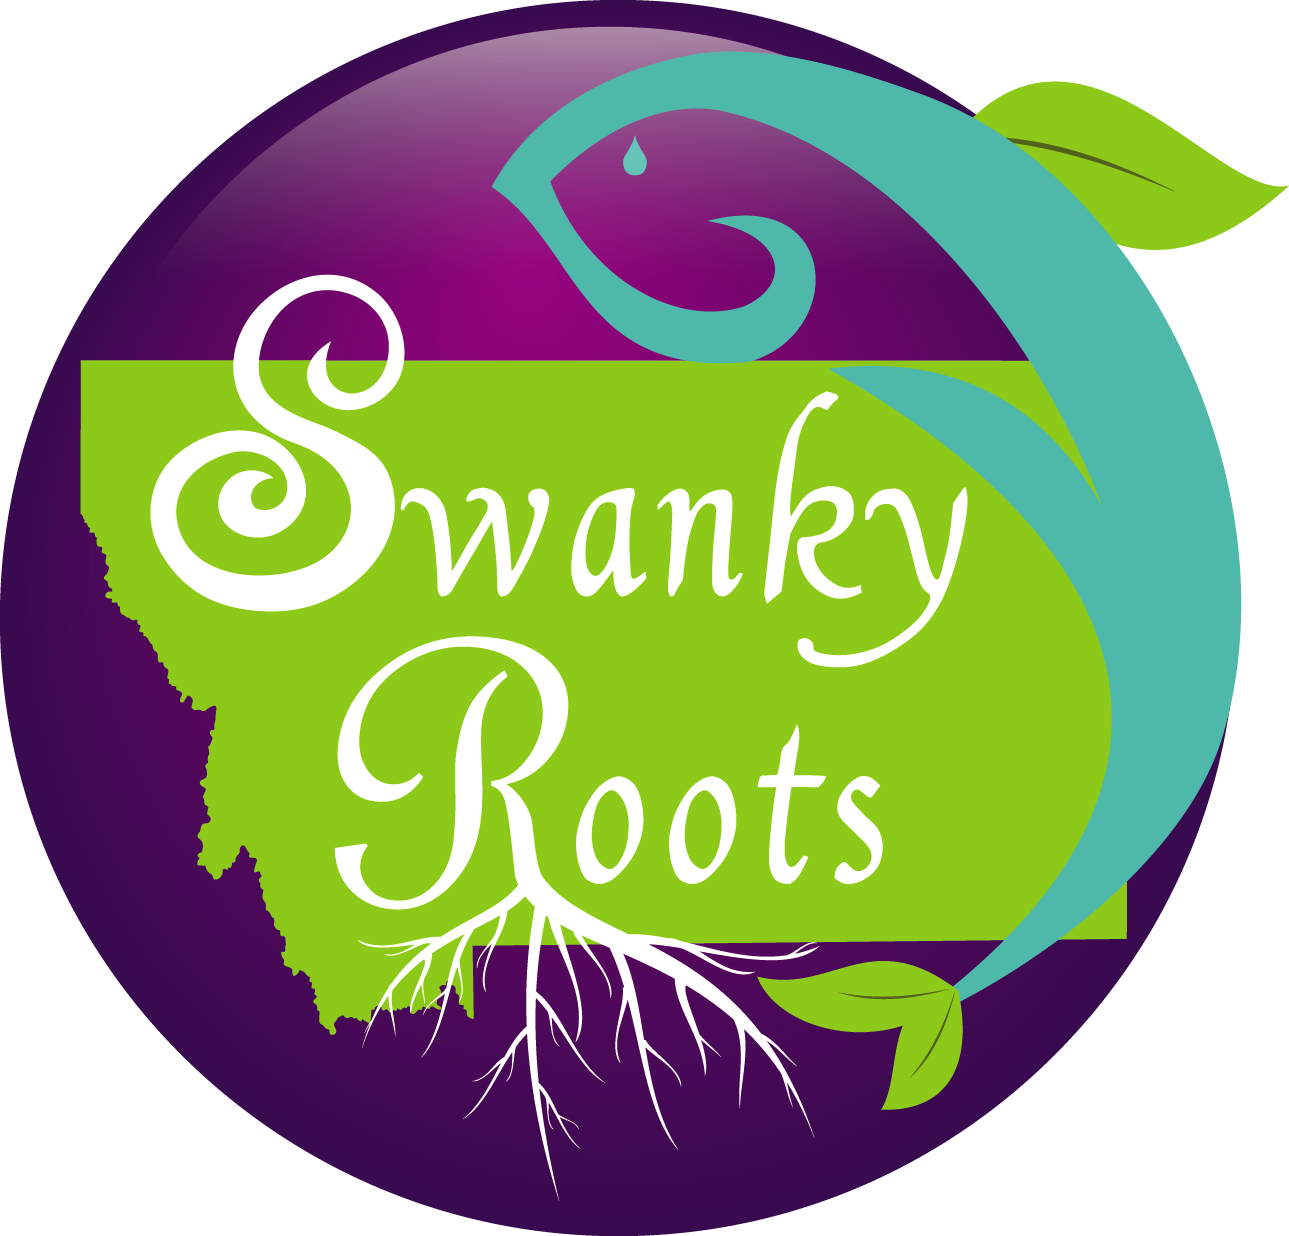 Swanky Roots